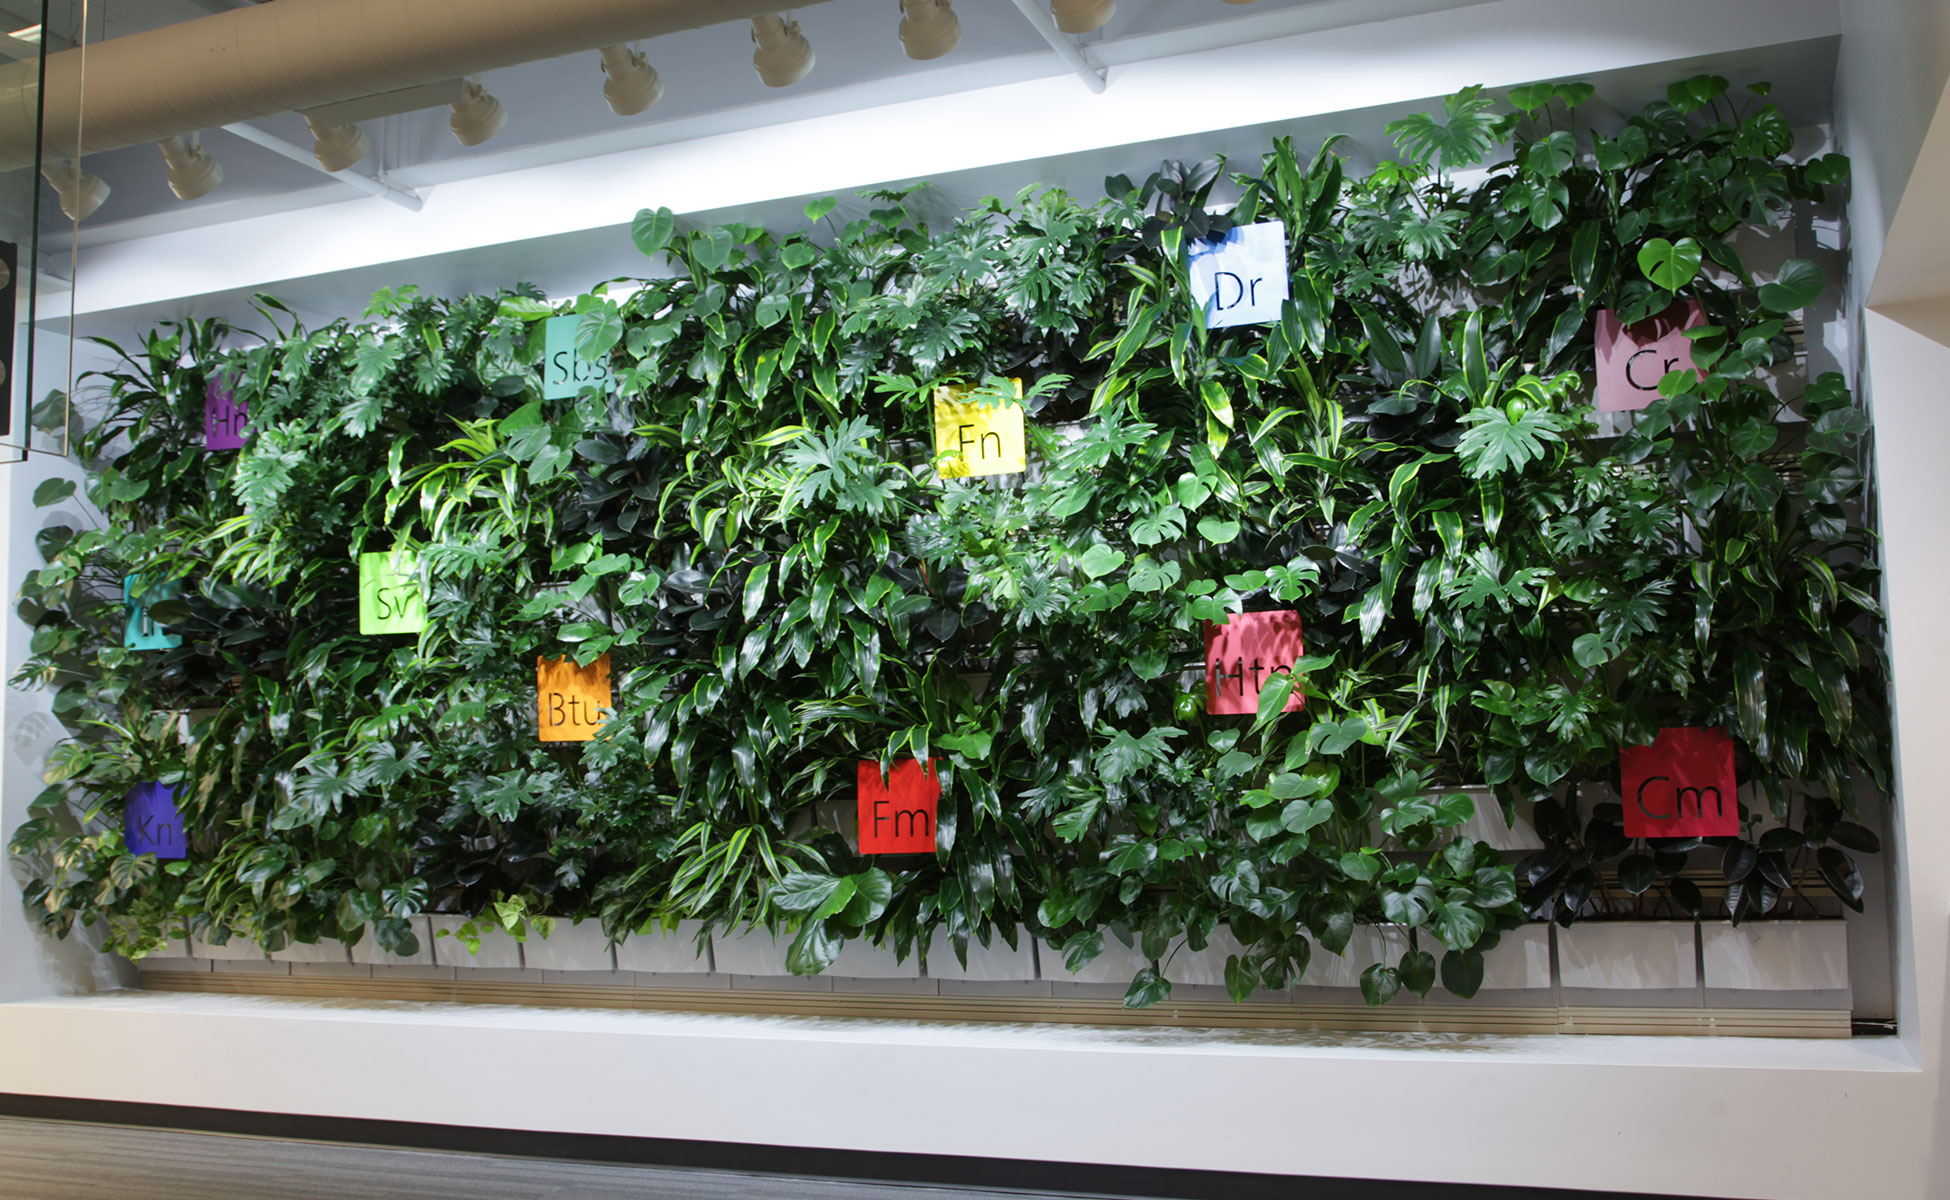 Corporate office with indoor living wall improves workplace.